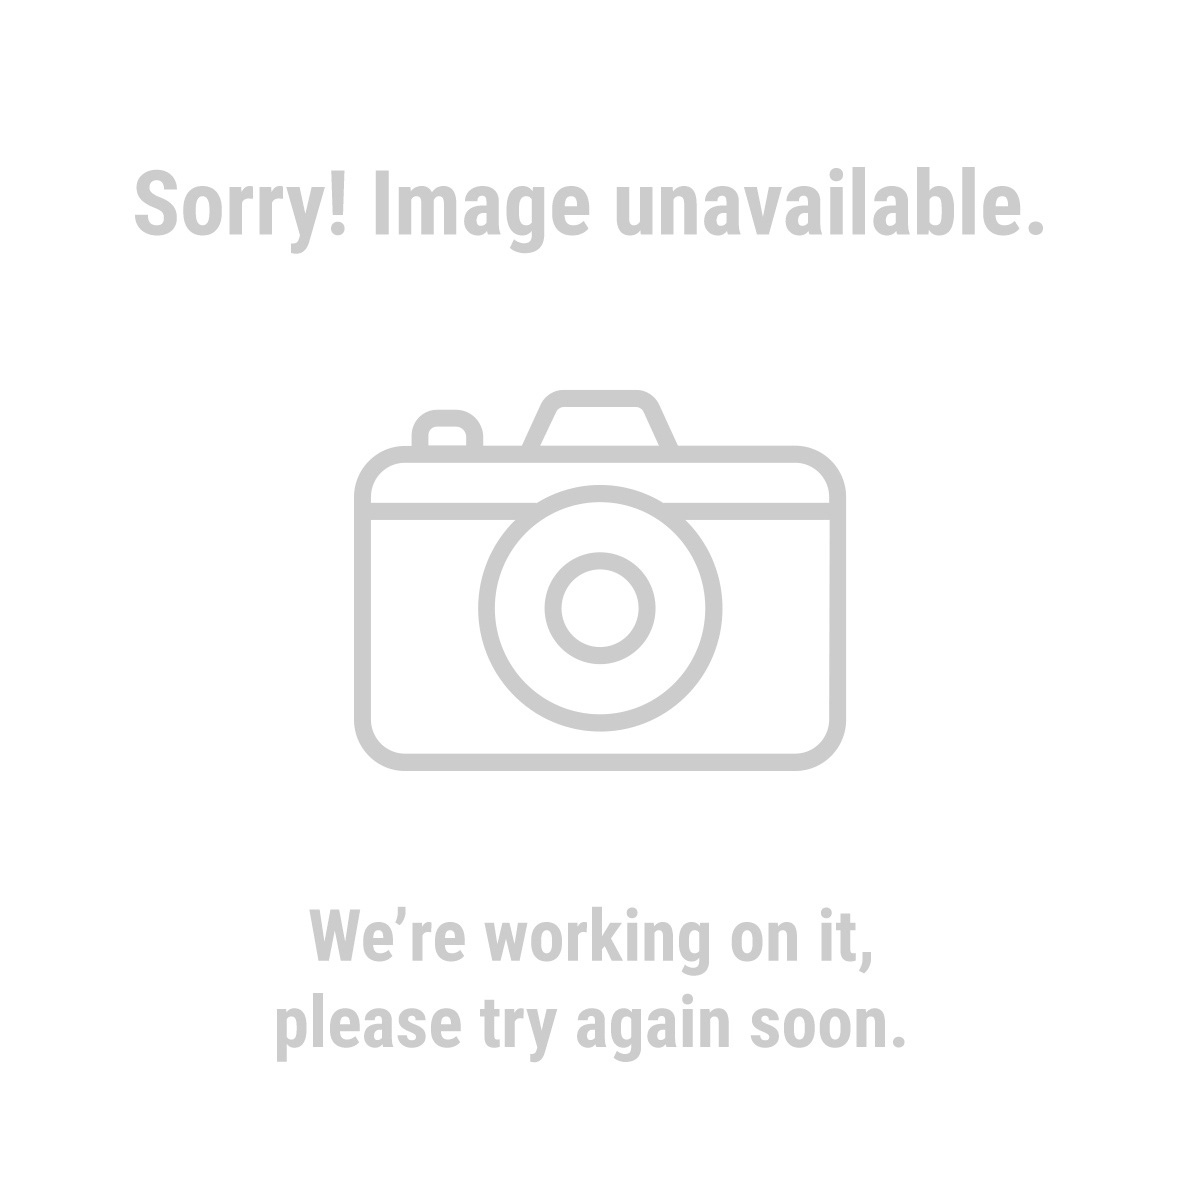 Slime 63004 1 Gallon Slime® Tire Sealant